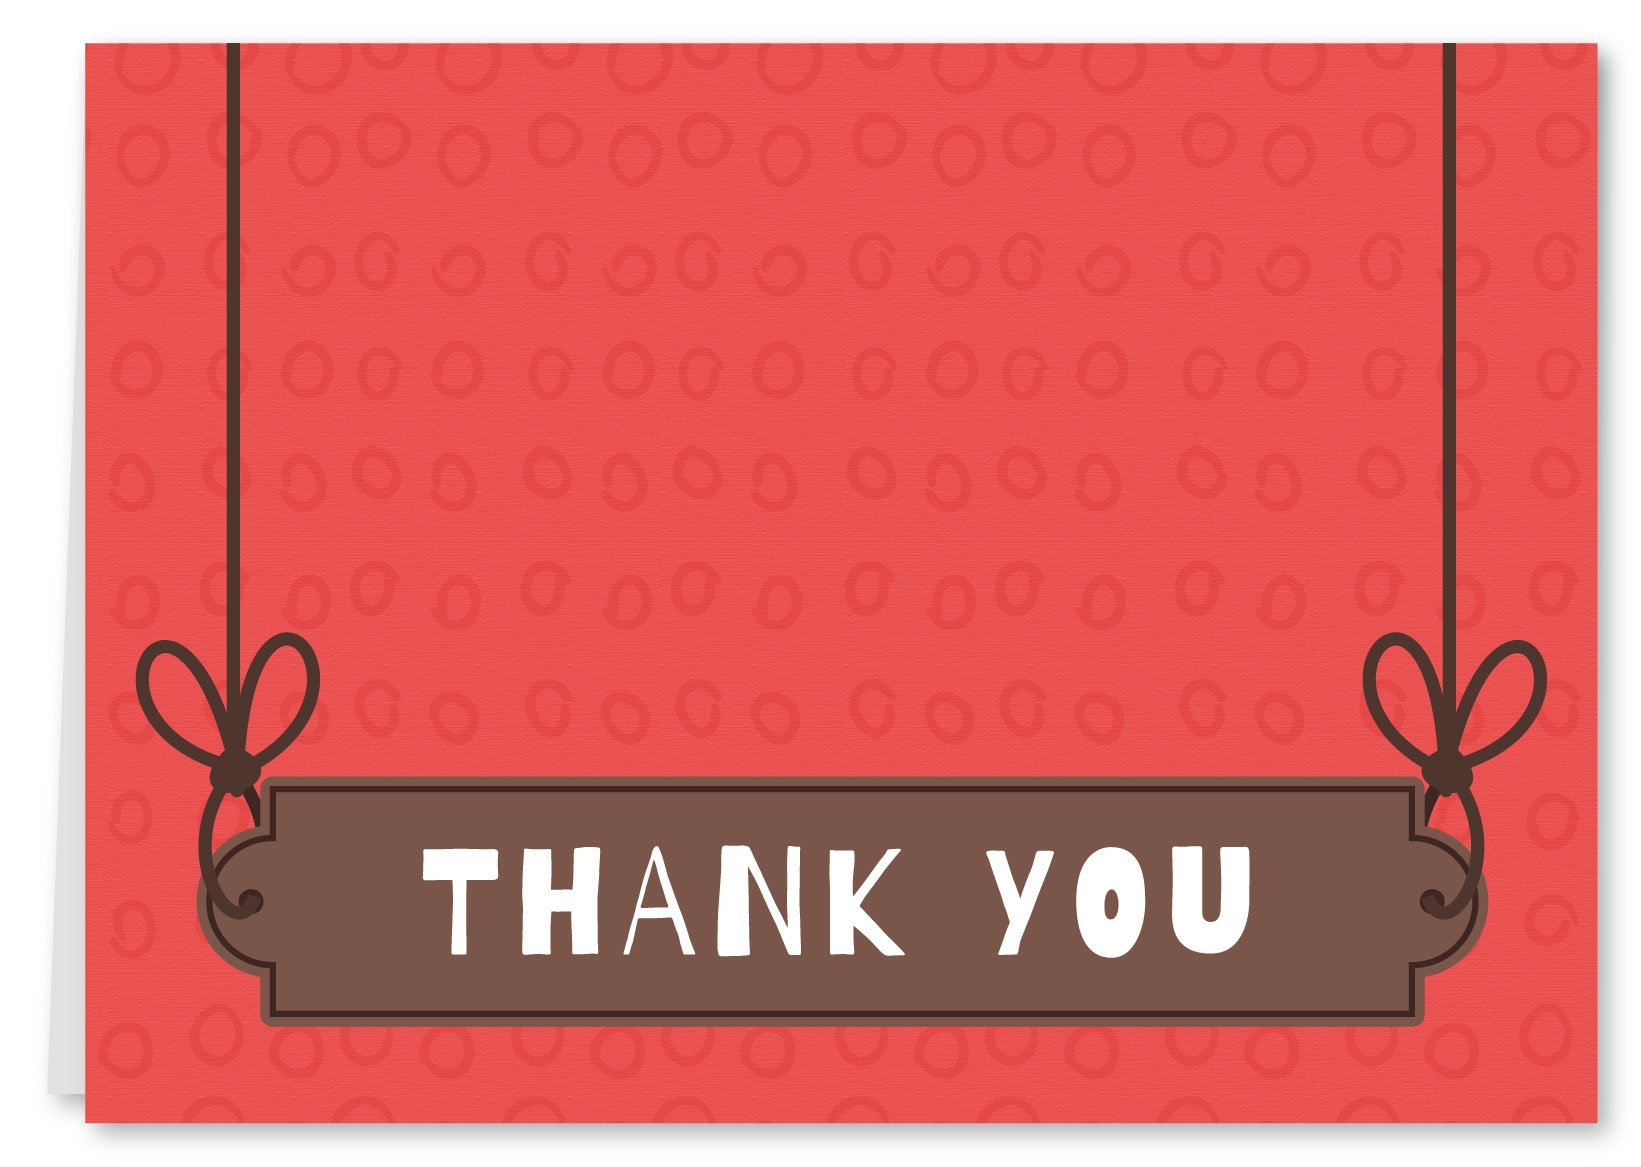 Thank you cards vouchers buy thank you vouchers cards online gc3 kristyandbryce Gallery